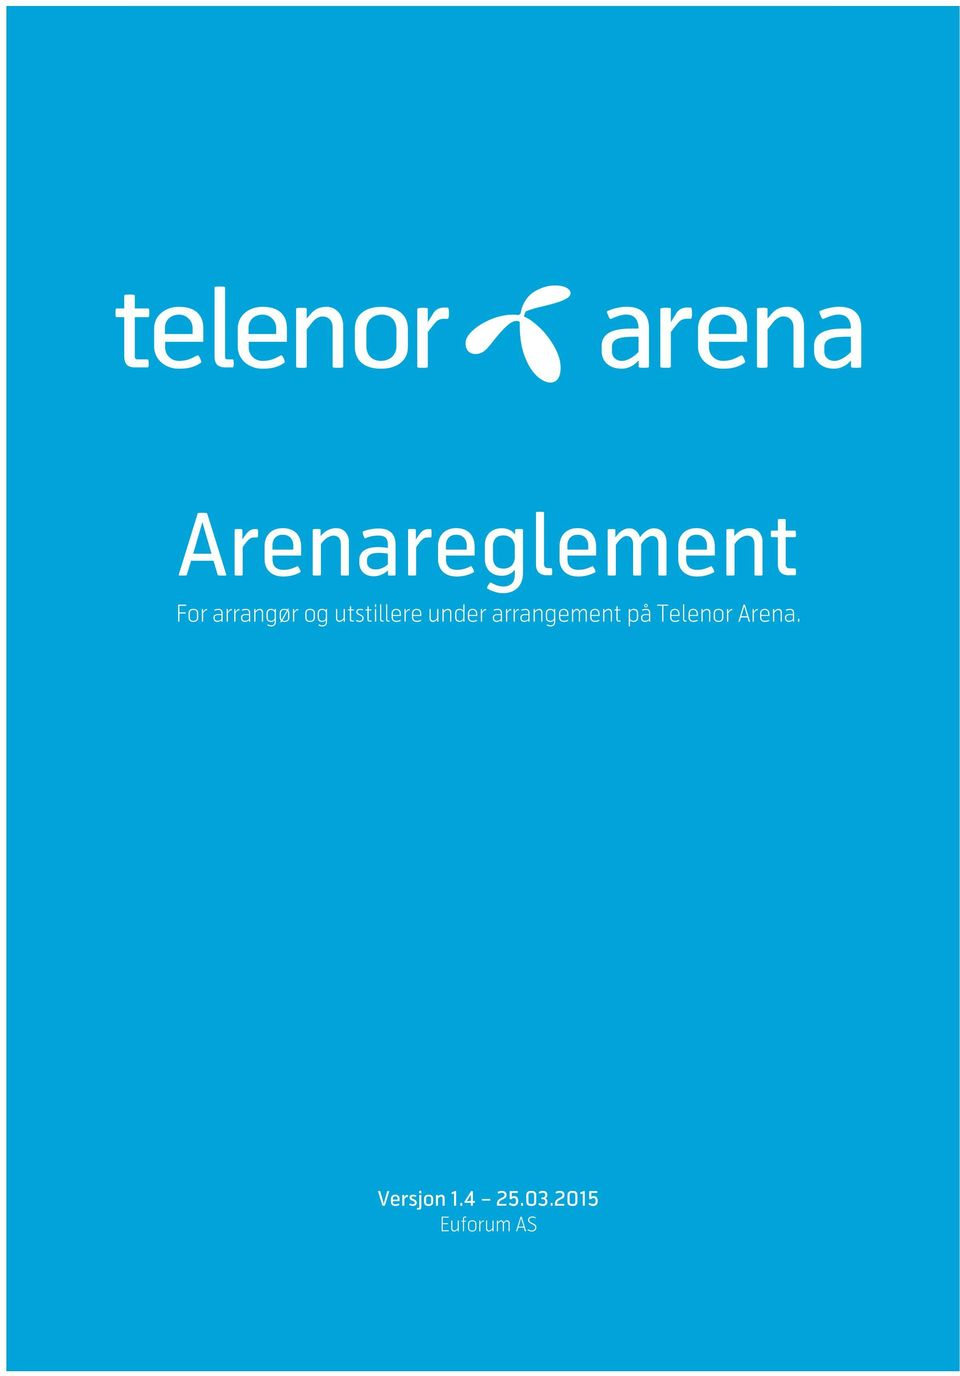 arrangement på Telenor